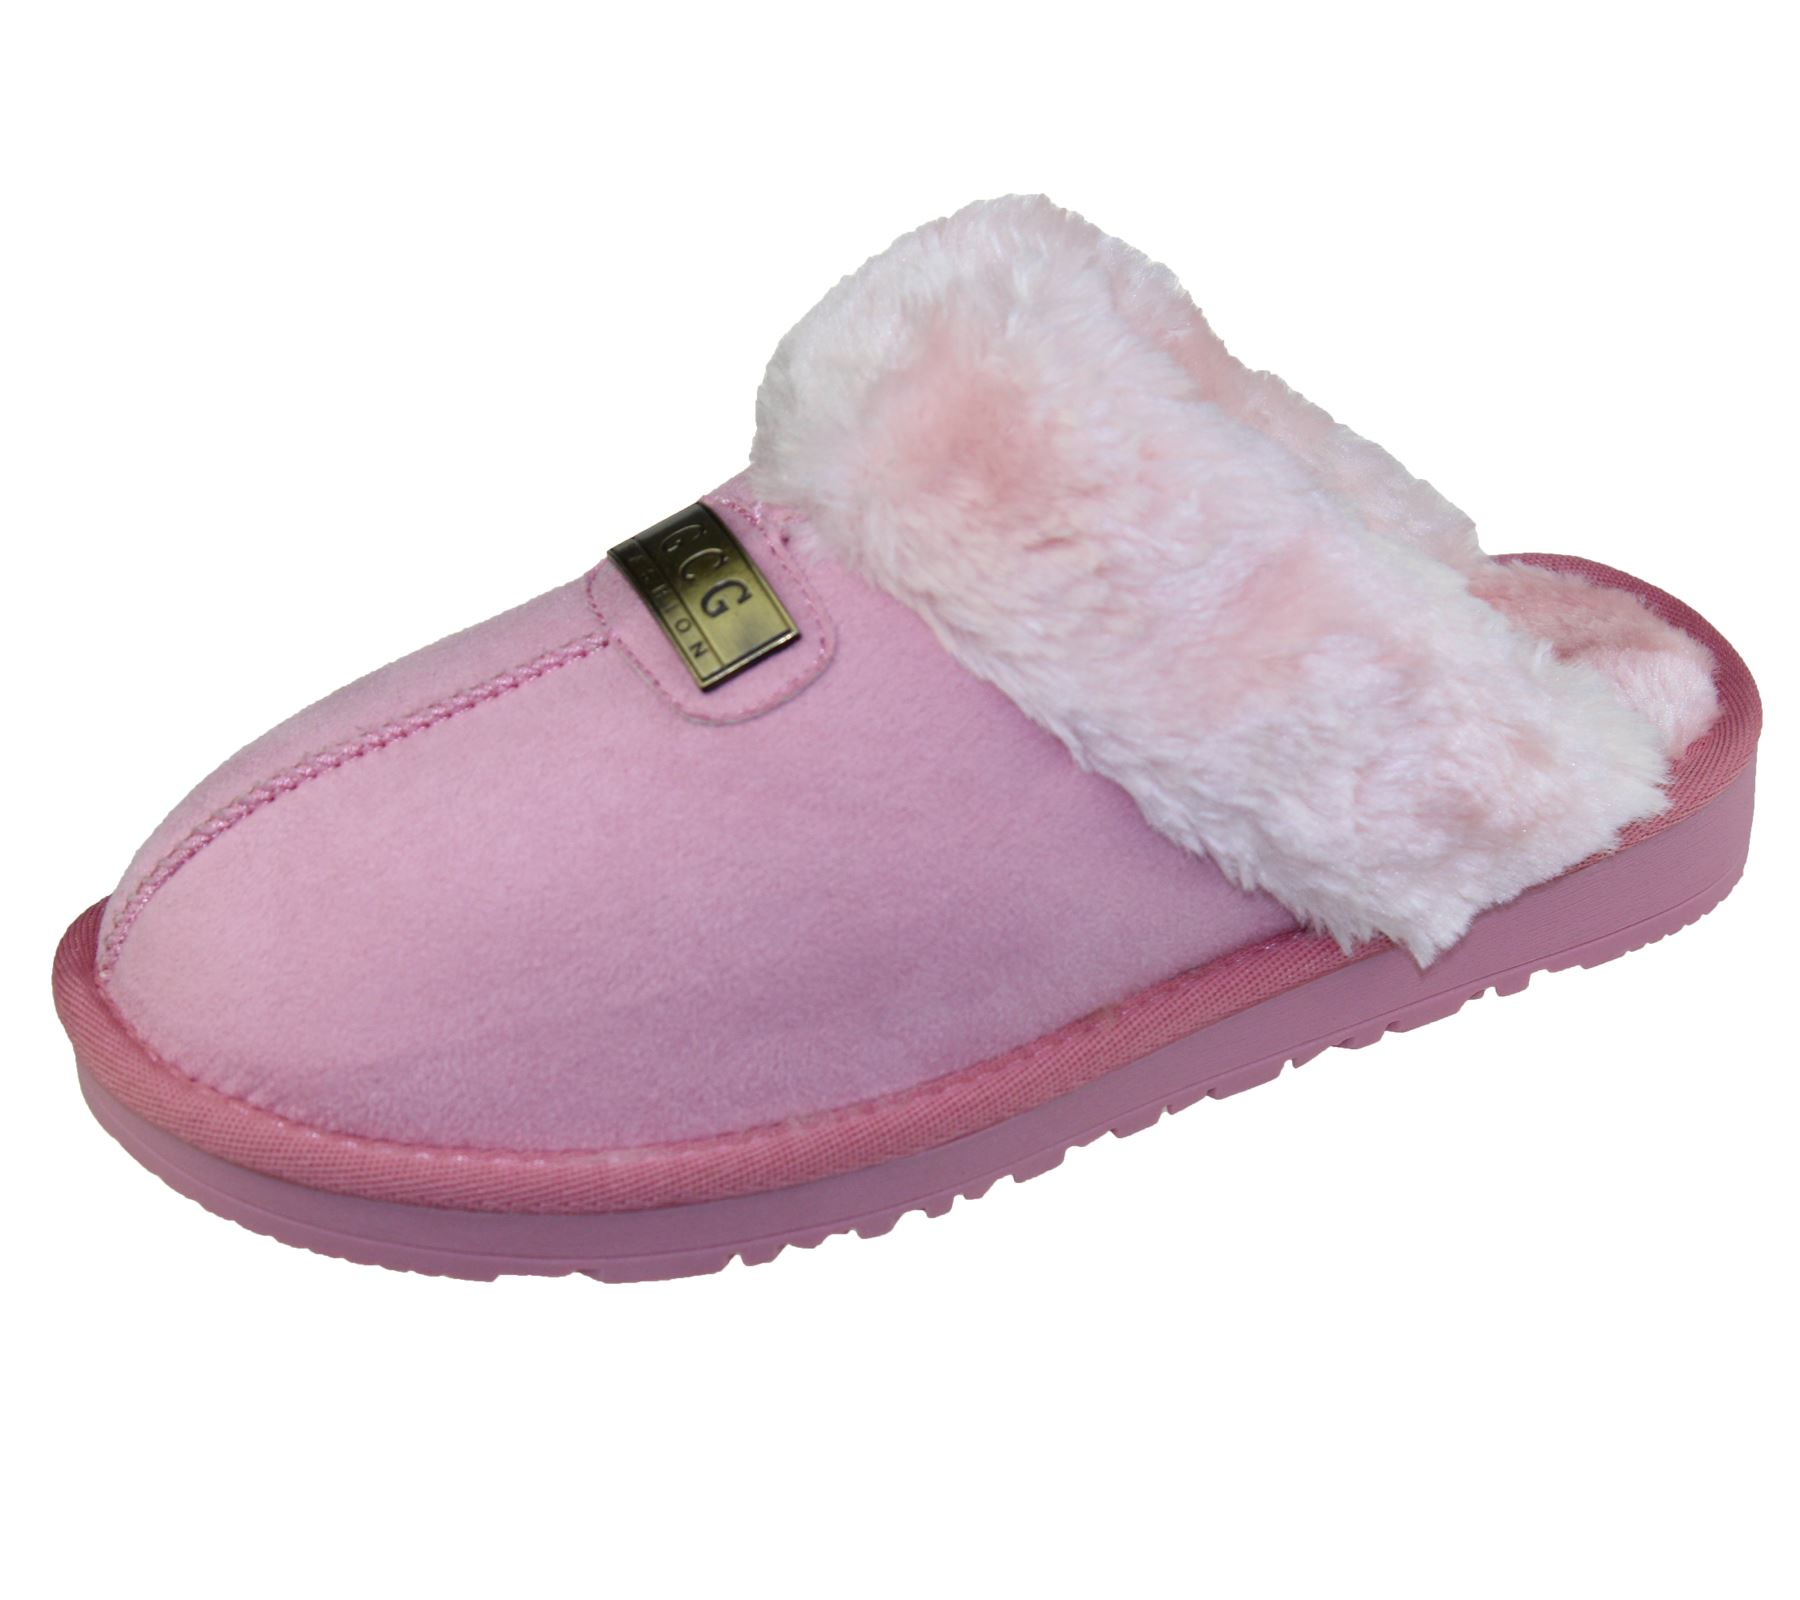 Womens-Fur-Lined-Slippers-Ladies-Mules-Non-Slip-Rubber-Sole-Shoes miniatura 28